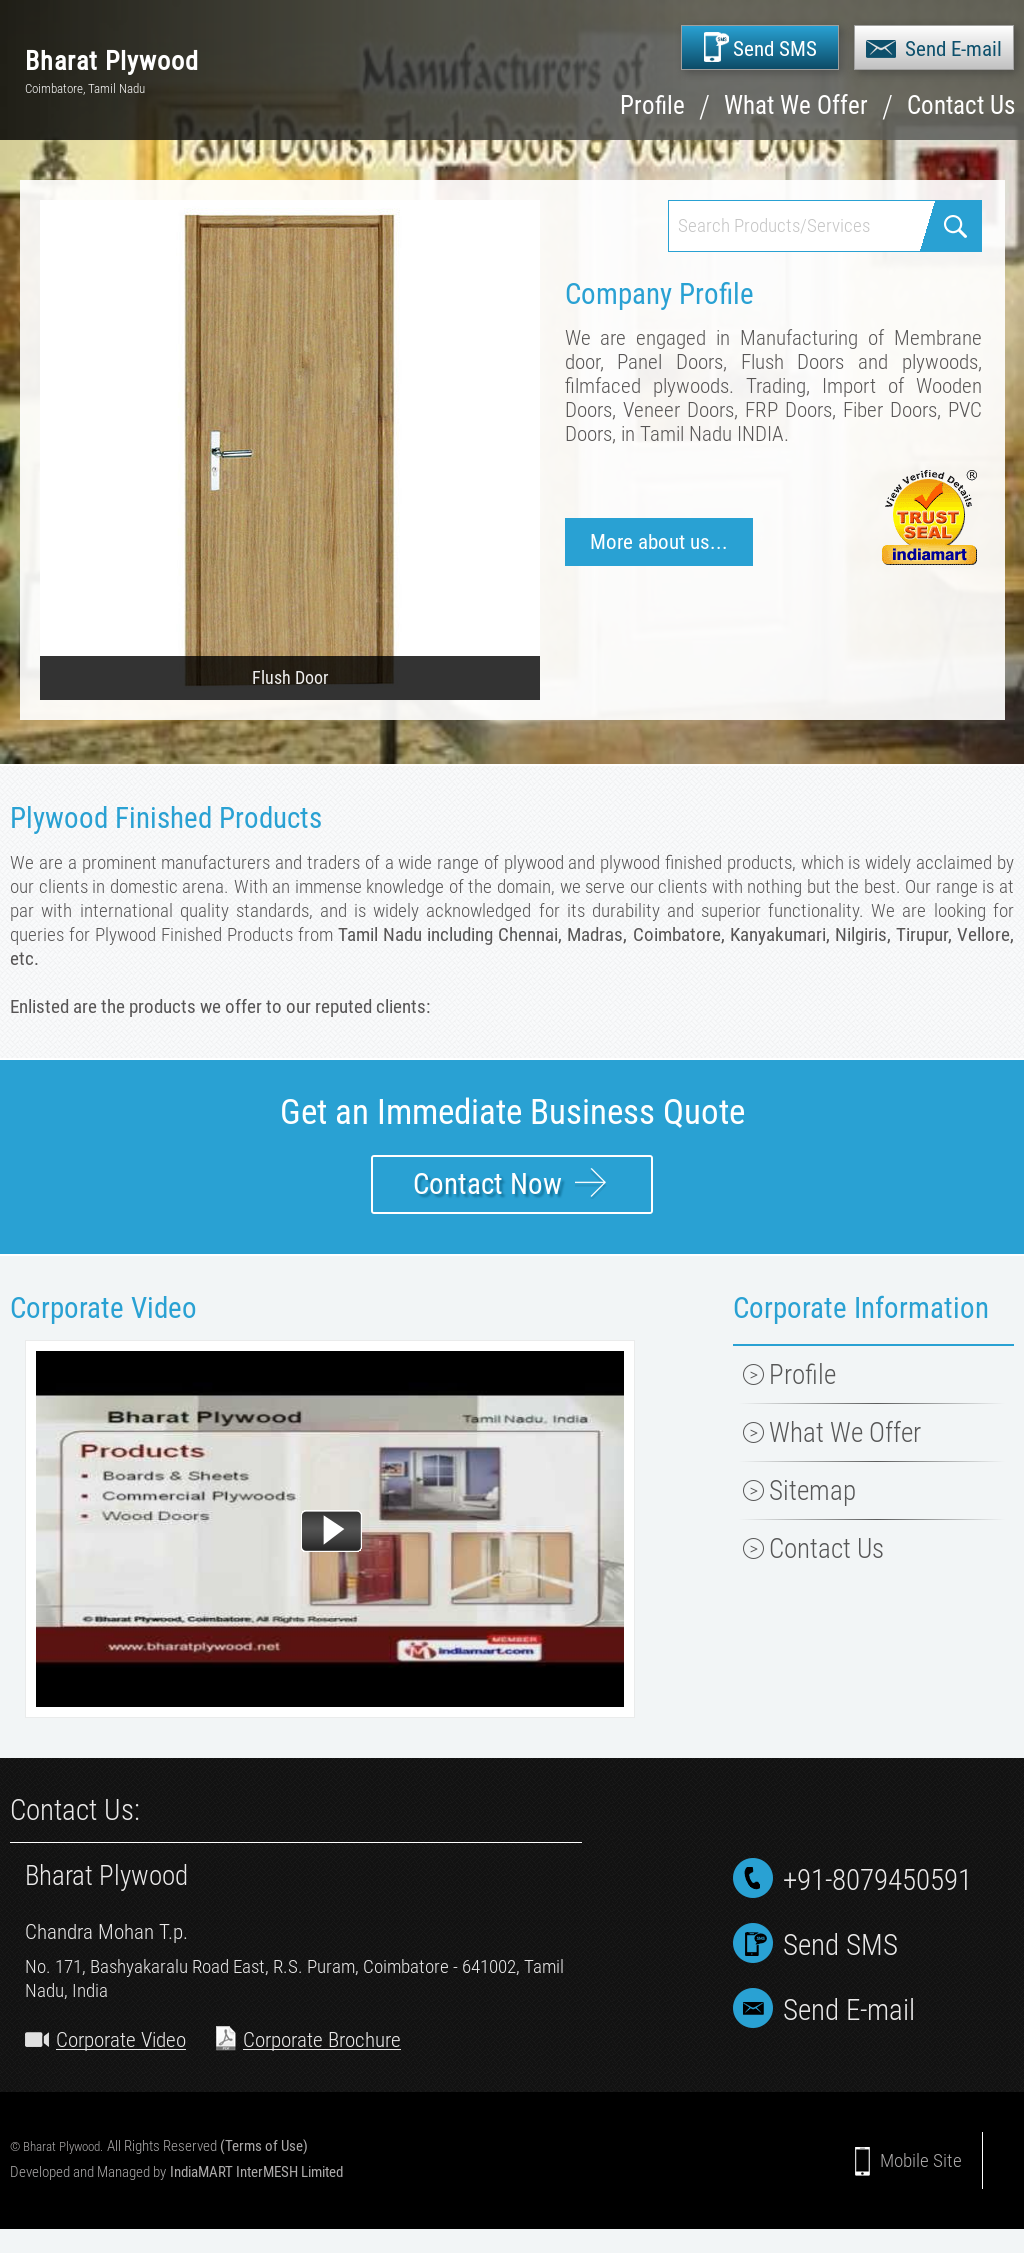 Bharat Plywood Competitors, Revenue and Employees - Owler